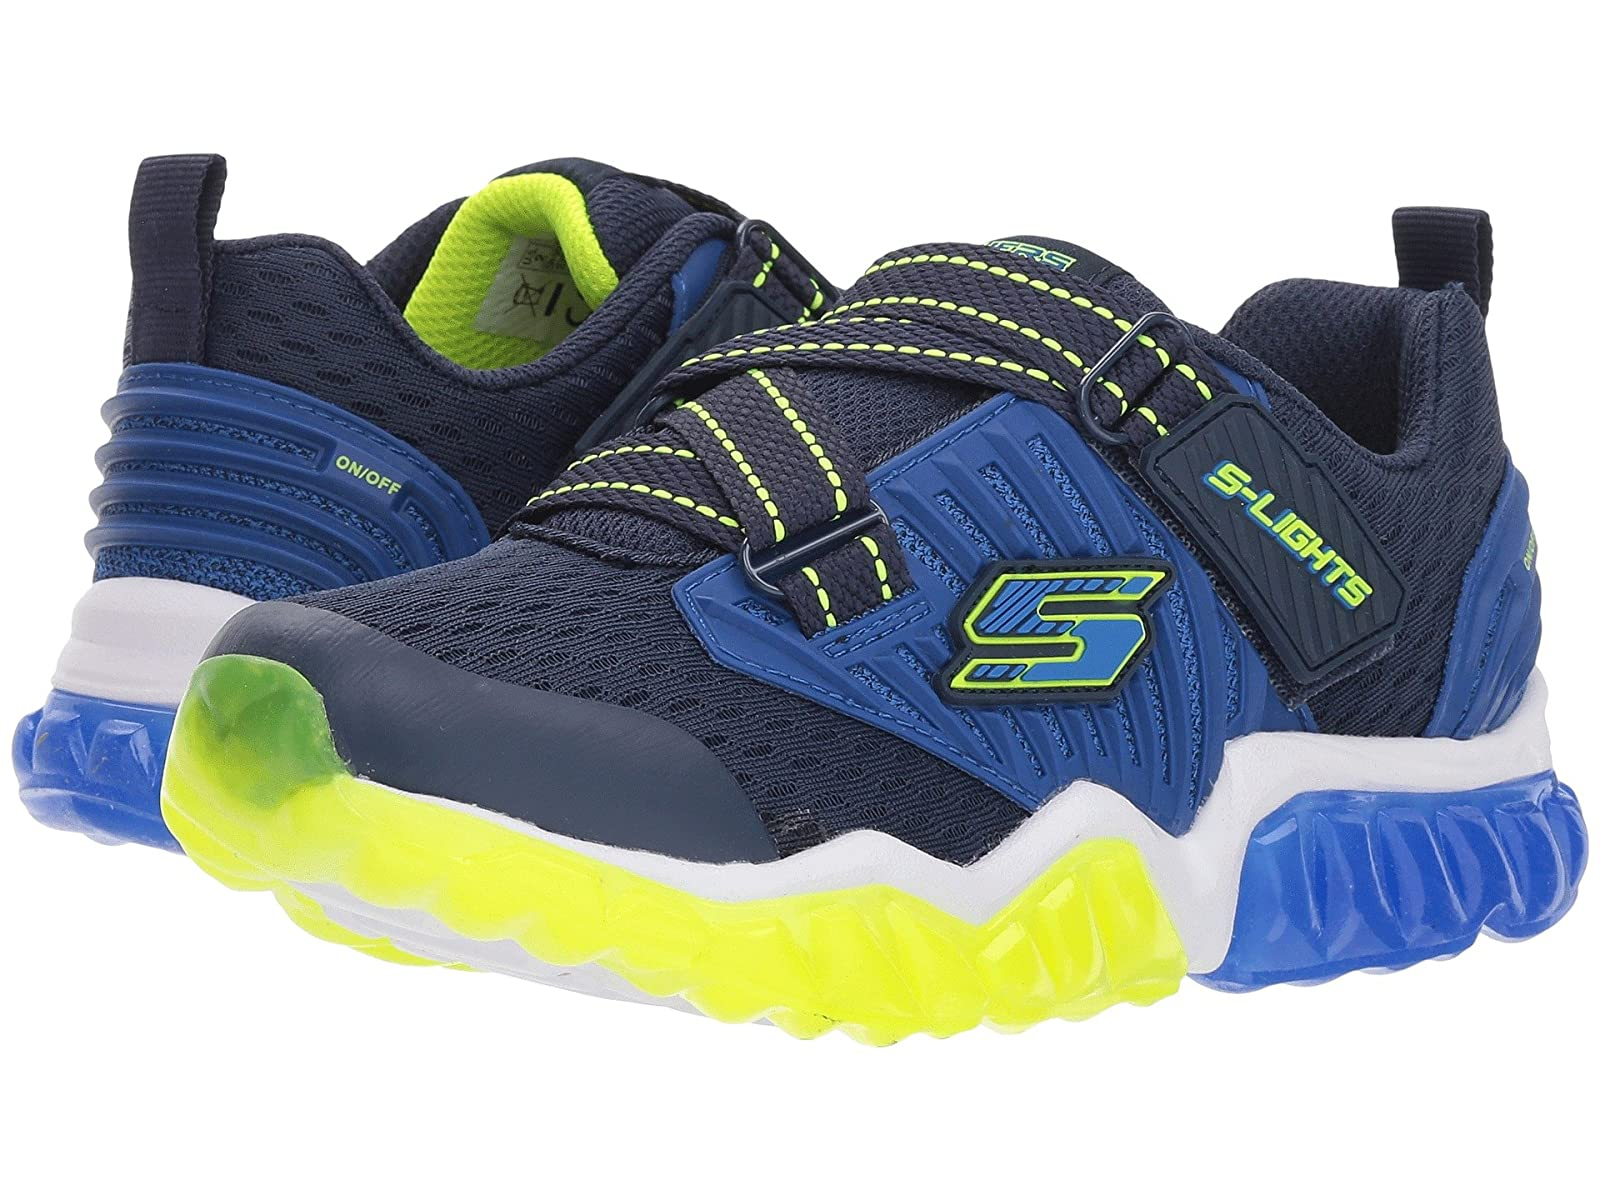 SKECHERS KIDS Rapid Flash 90721L Lights (Little Kid/Big Kid)Atmospheric grades have affordable shoes